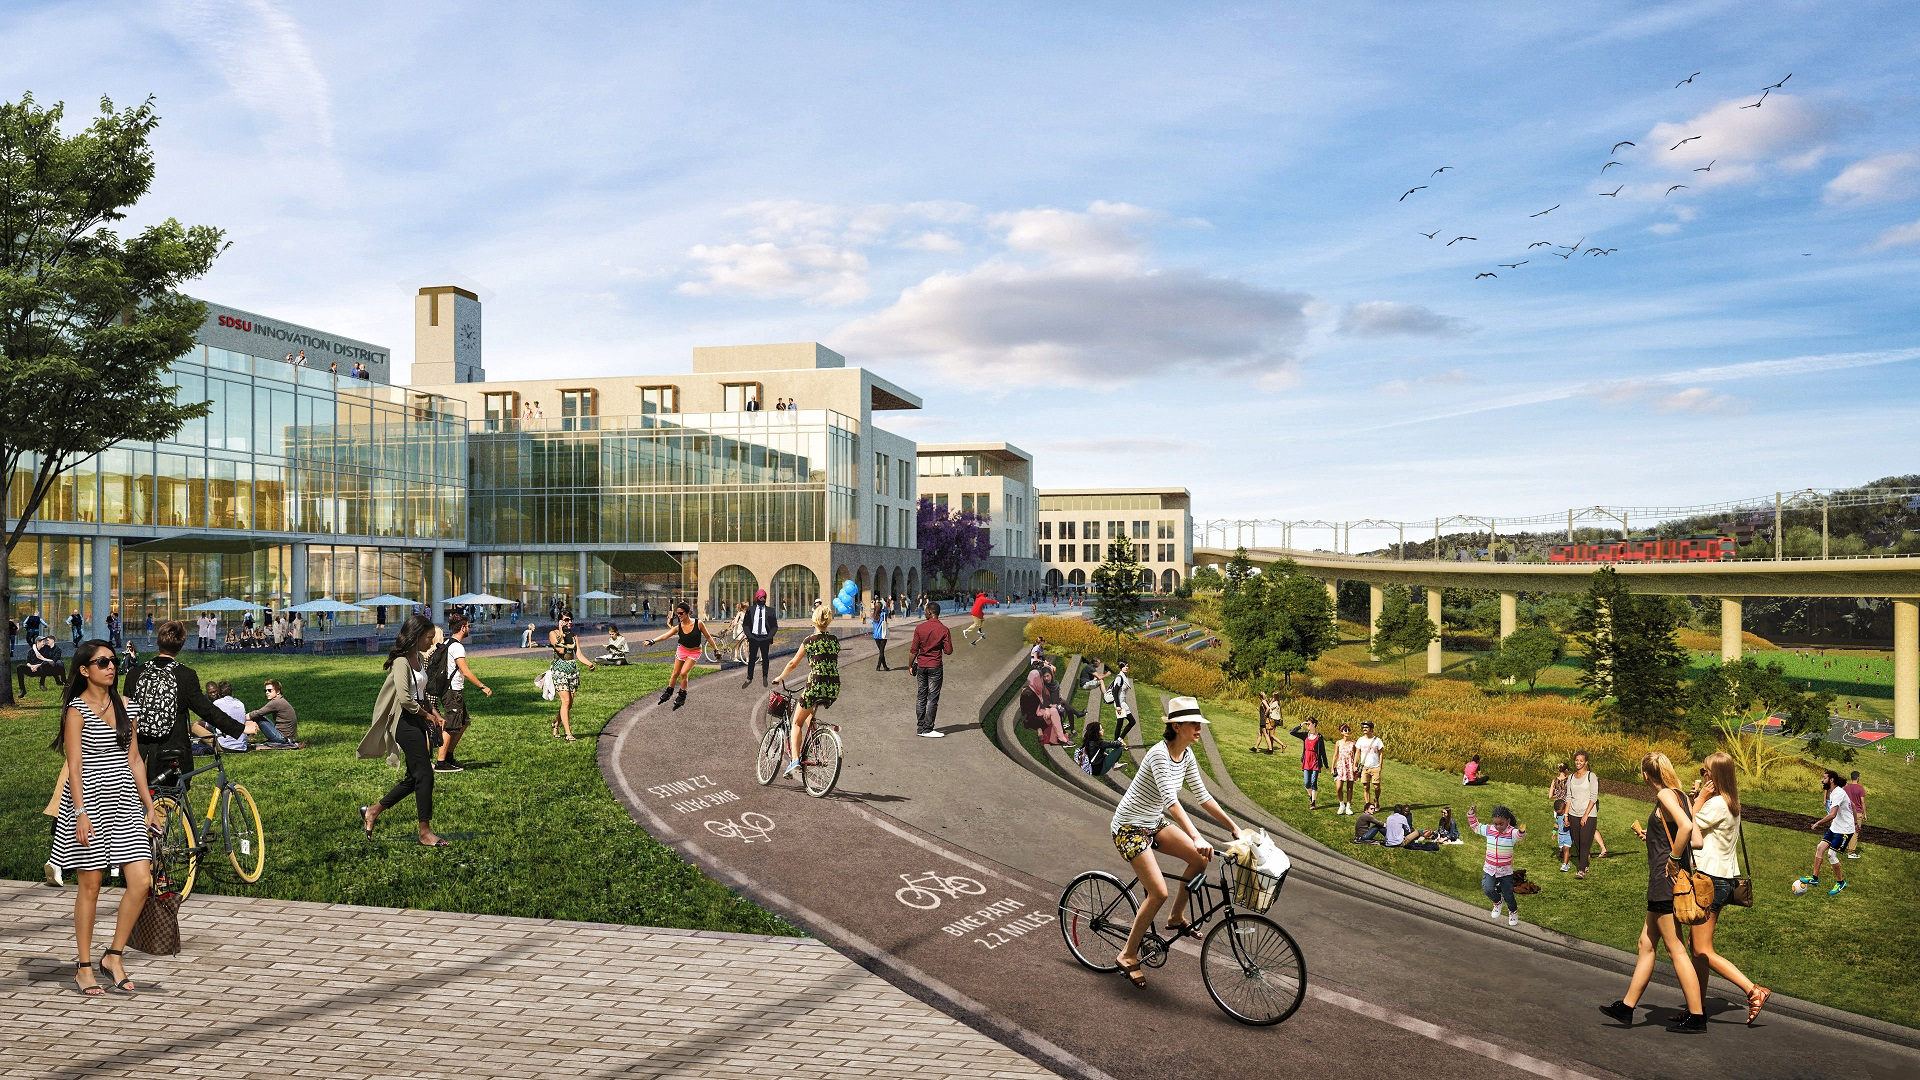 Plans for San Diego State University's new western campus include office, retail, apartment, hotel and civic elements, along with a new stadium. (SDSU, Carrier Johnson + Culture)